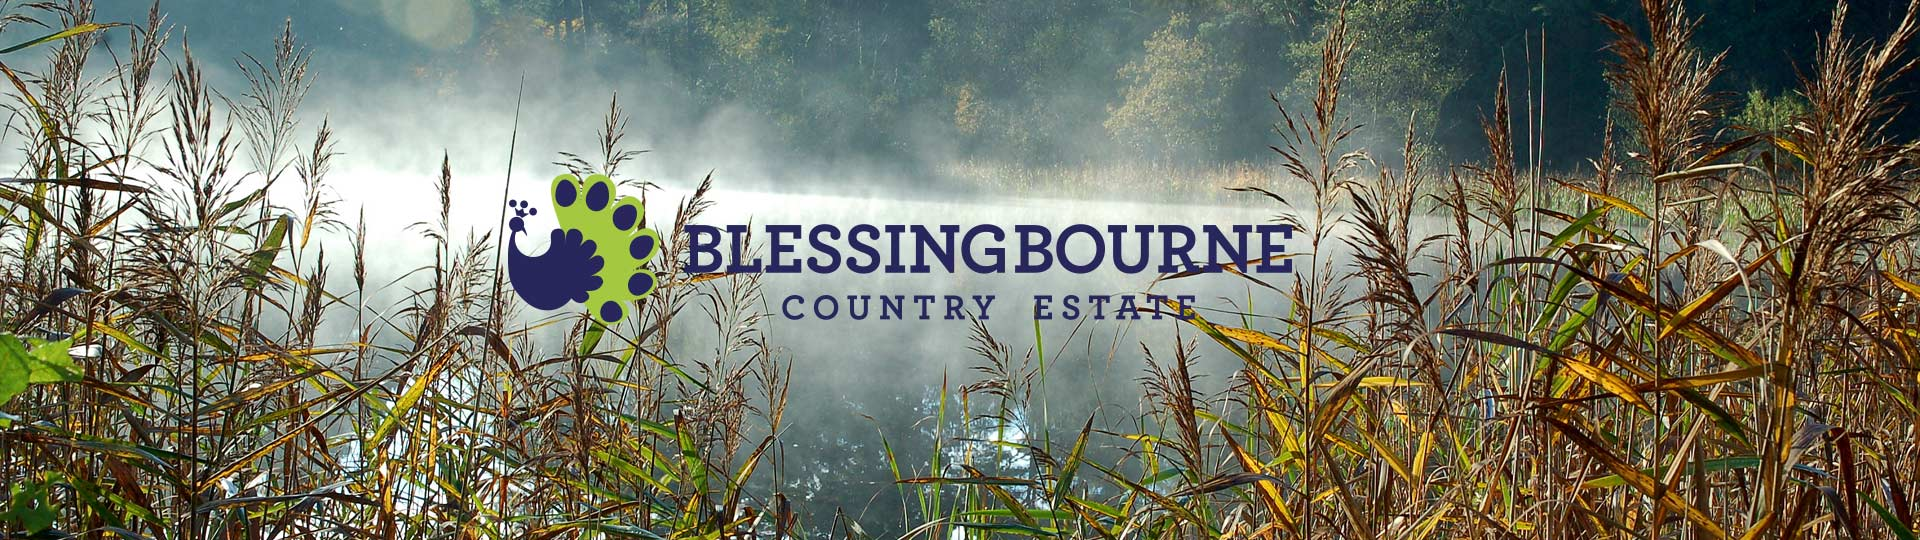 New Web Design Cient: Blessingbourne Estate Northern Ireland main image